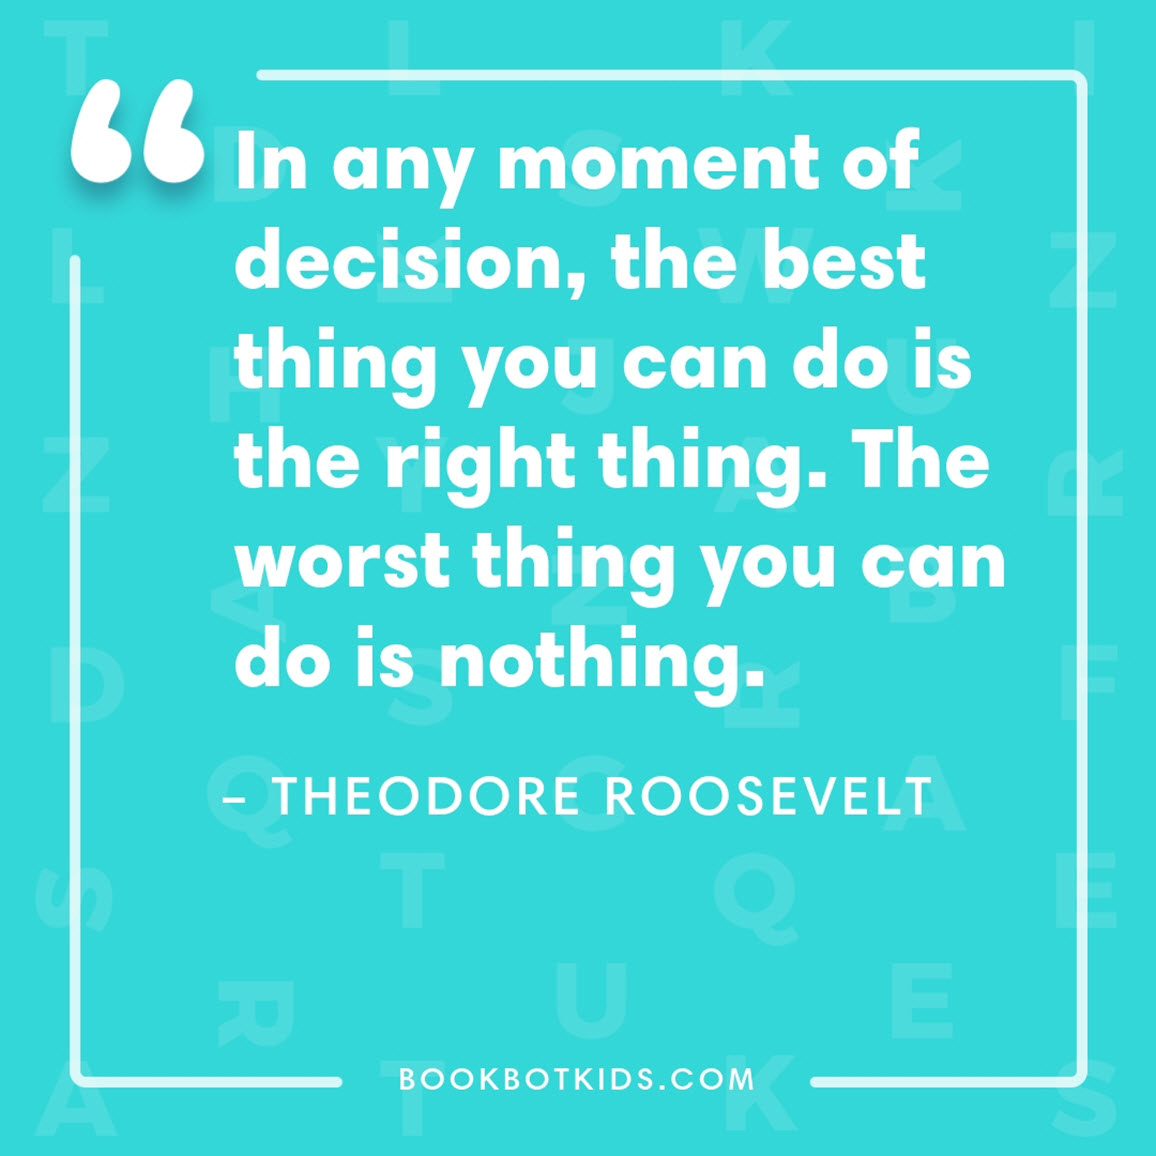 In any moment of decision, the best thing you can do is the right thing. The worst thing you can do is nothing. – Theodore Roosevelt